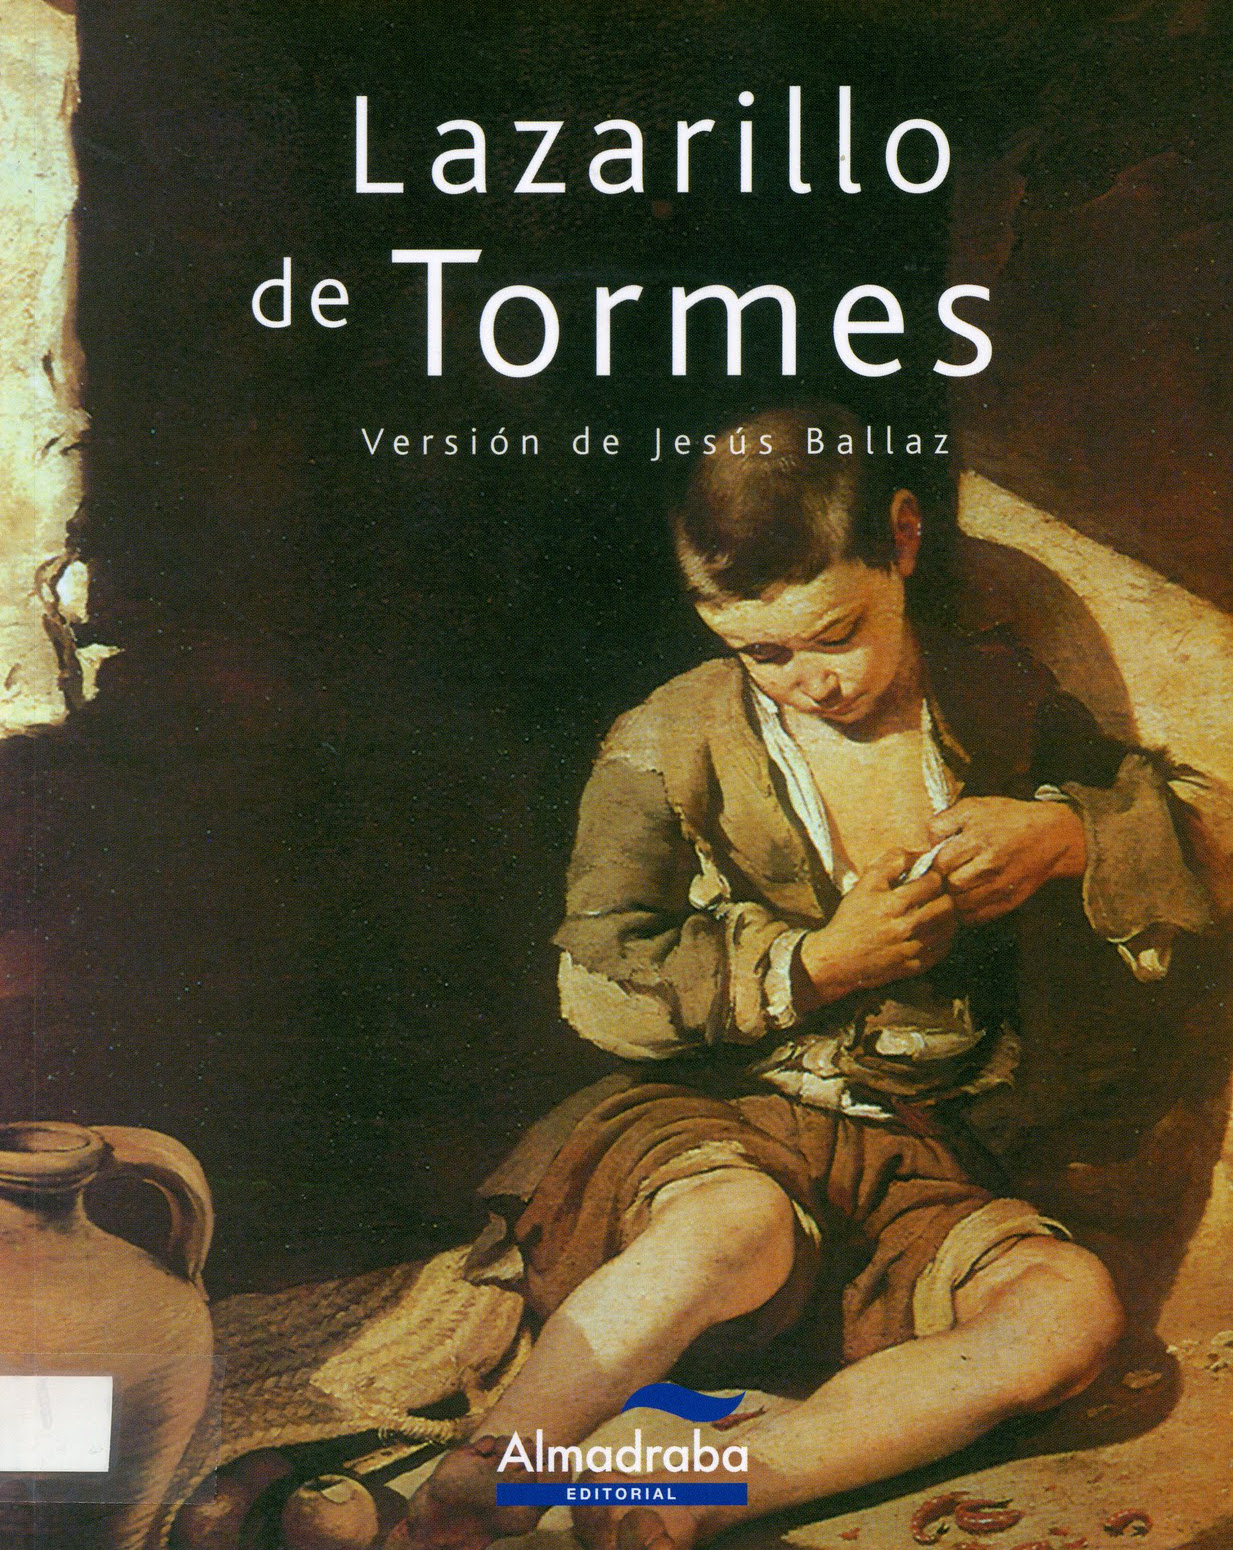 lazarillo de tormes english pdf